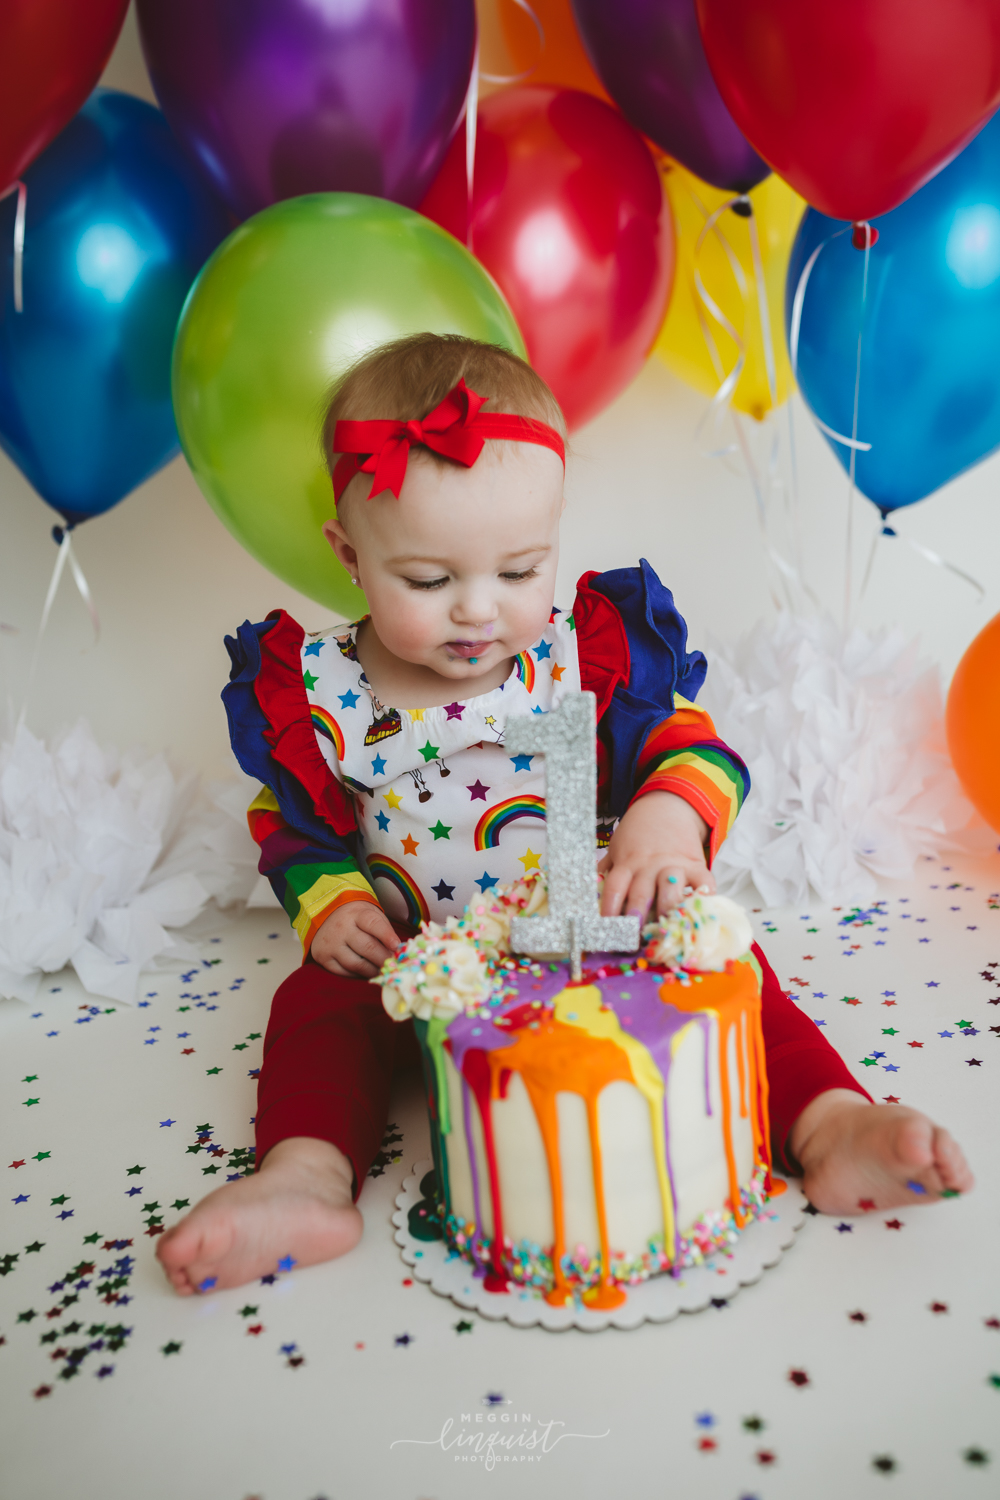 rainbow-brite-cake-smash-reno-photographer-8.jpg